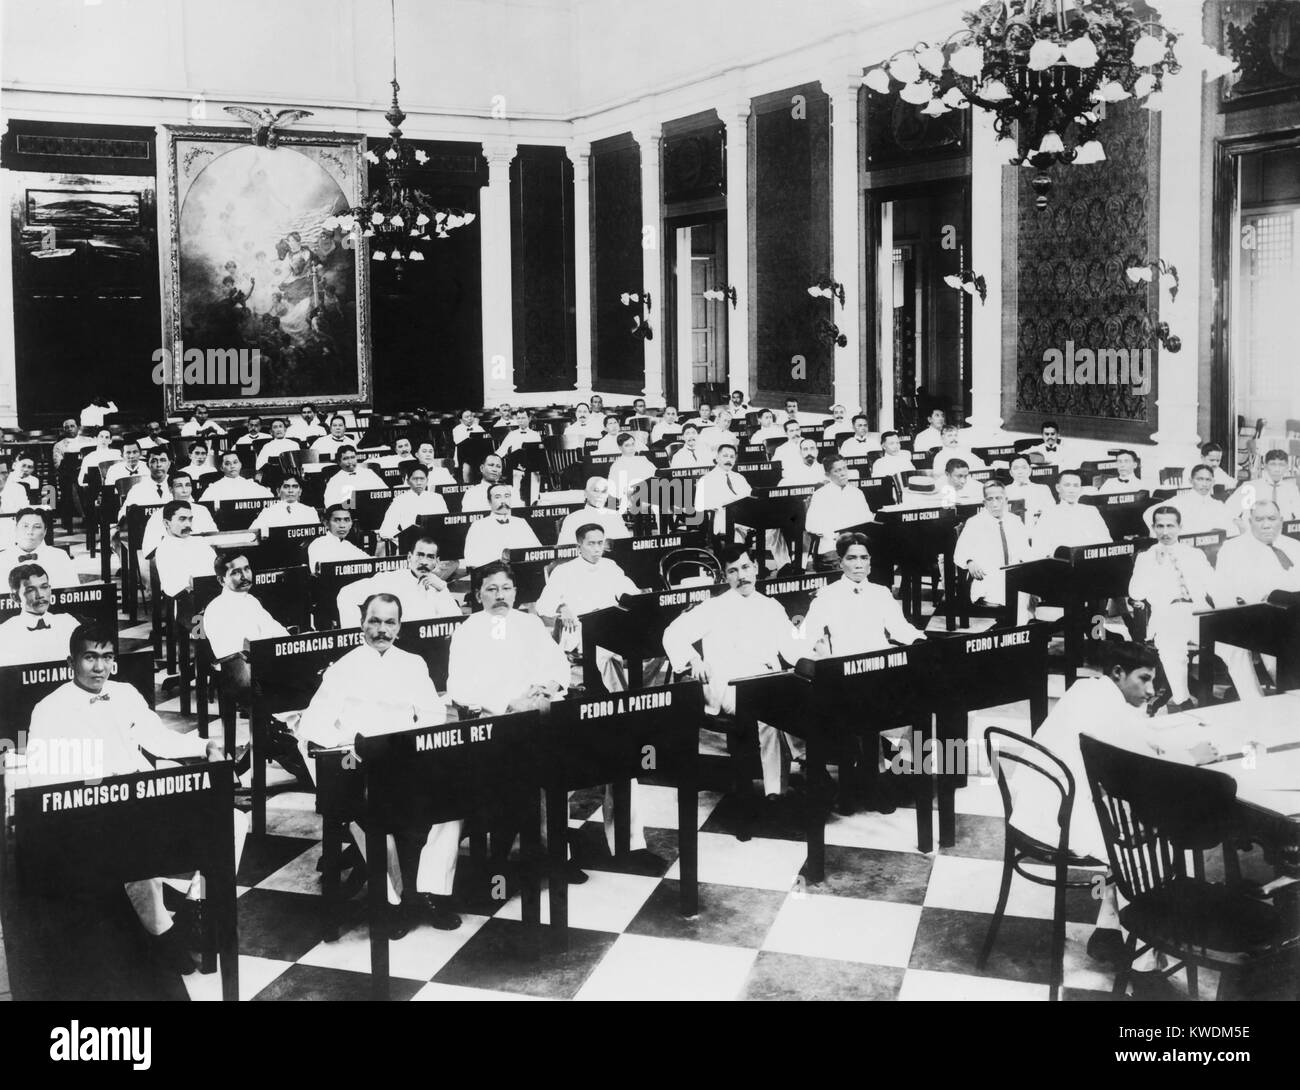 The popularly elected Philippines Assembly in its first session from 1908 to 1911. In 1916 the Philippine Senate Stock Photo